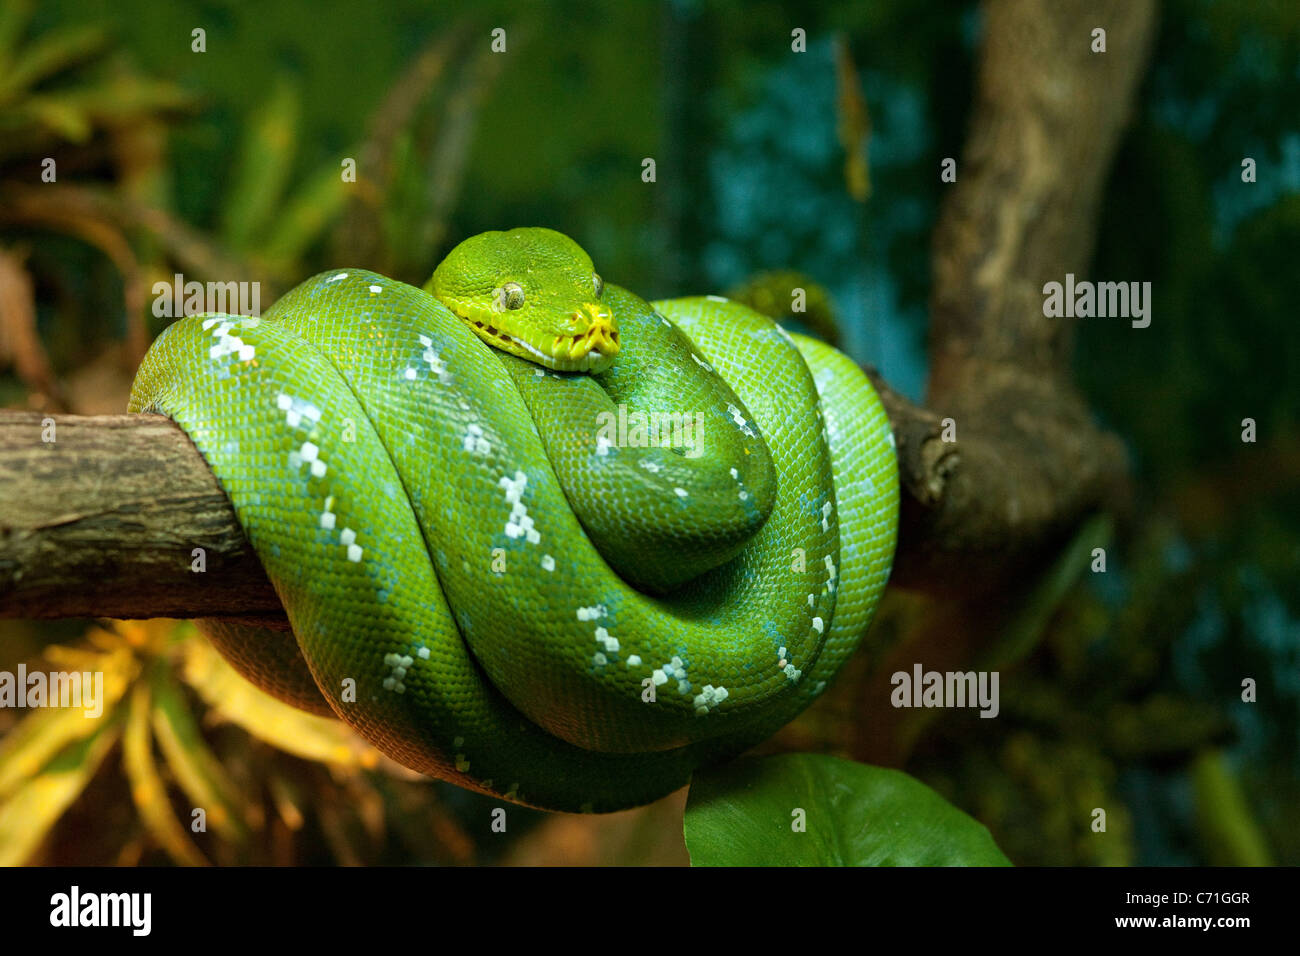 green-tree-python-morelia-viridis-coiled-around-a-branch-singapore-C71GGR.jpg